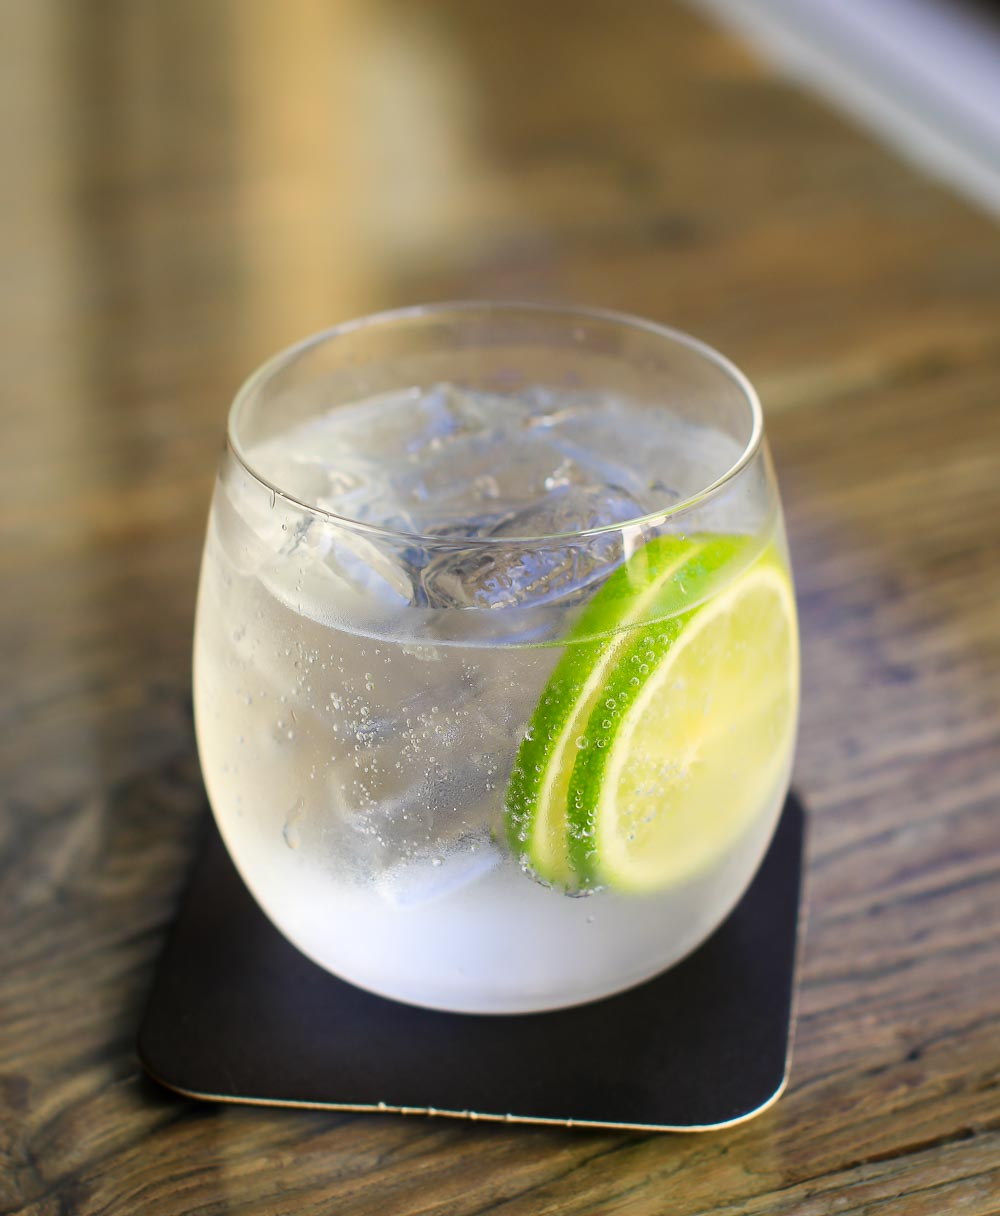 The Melbourne Gin Company Gin & Tonic. Photo by Michael Sperling